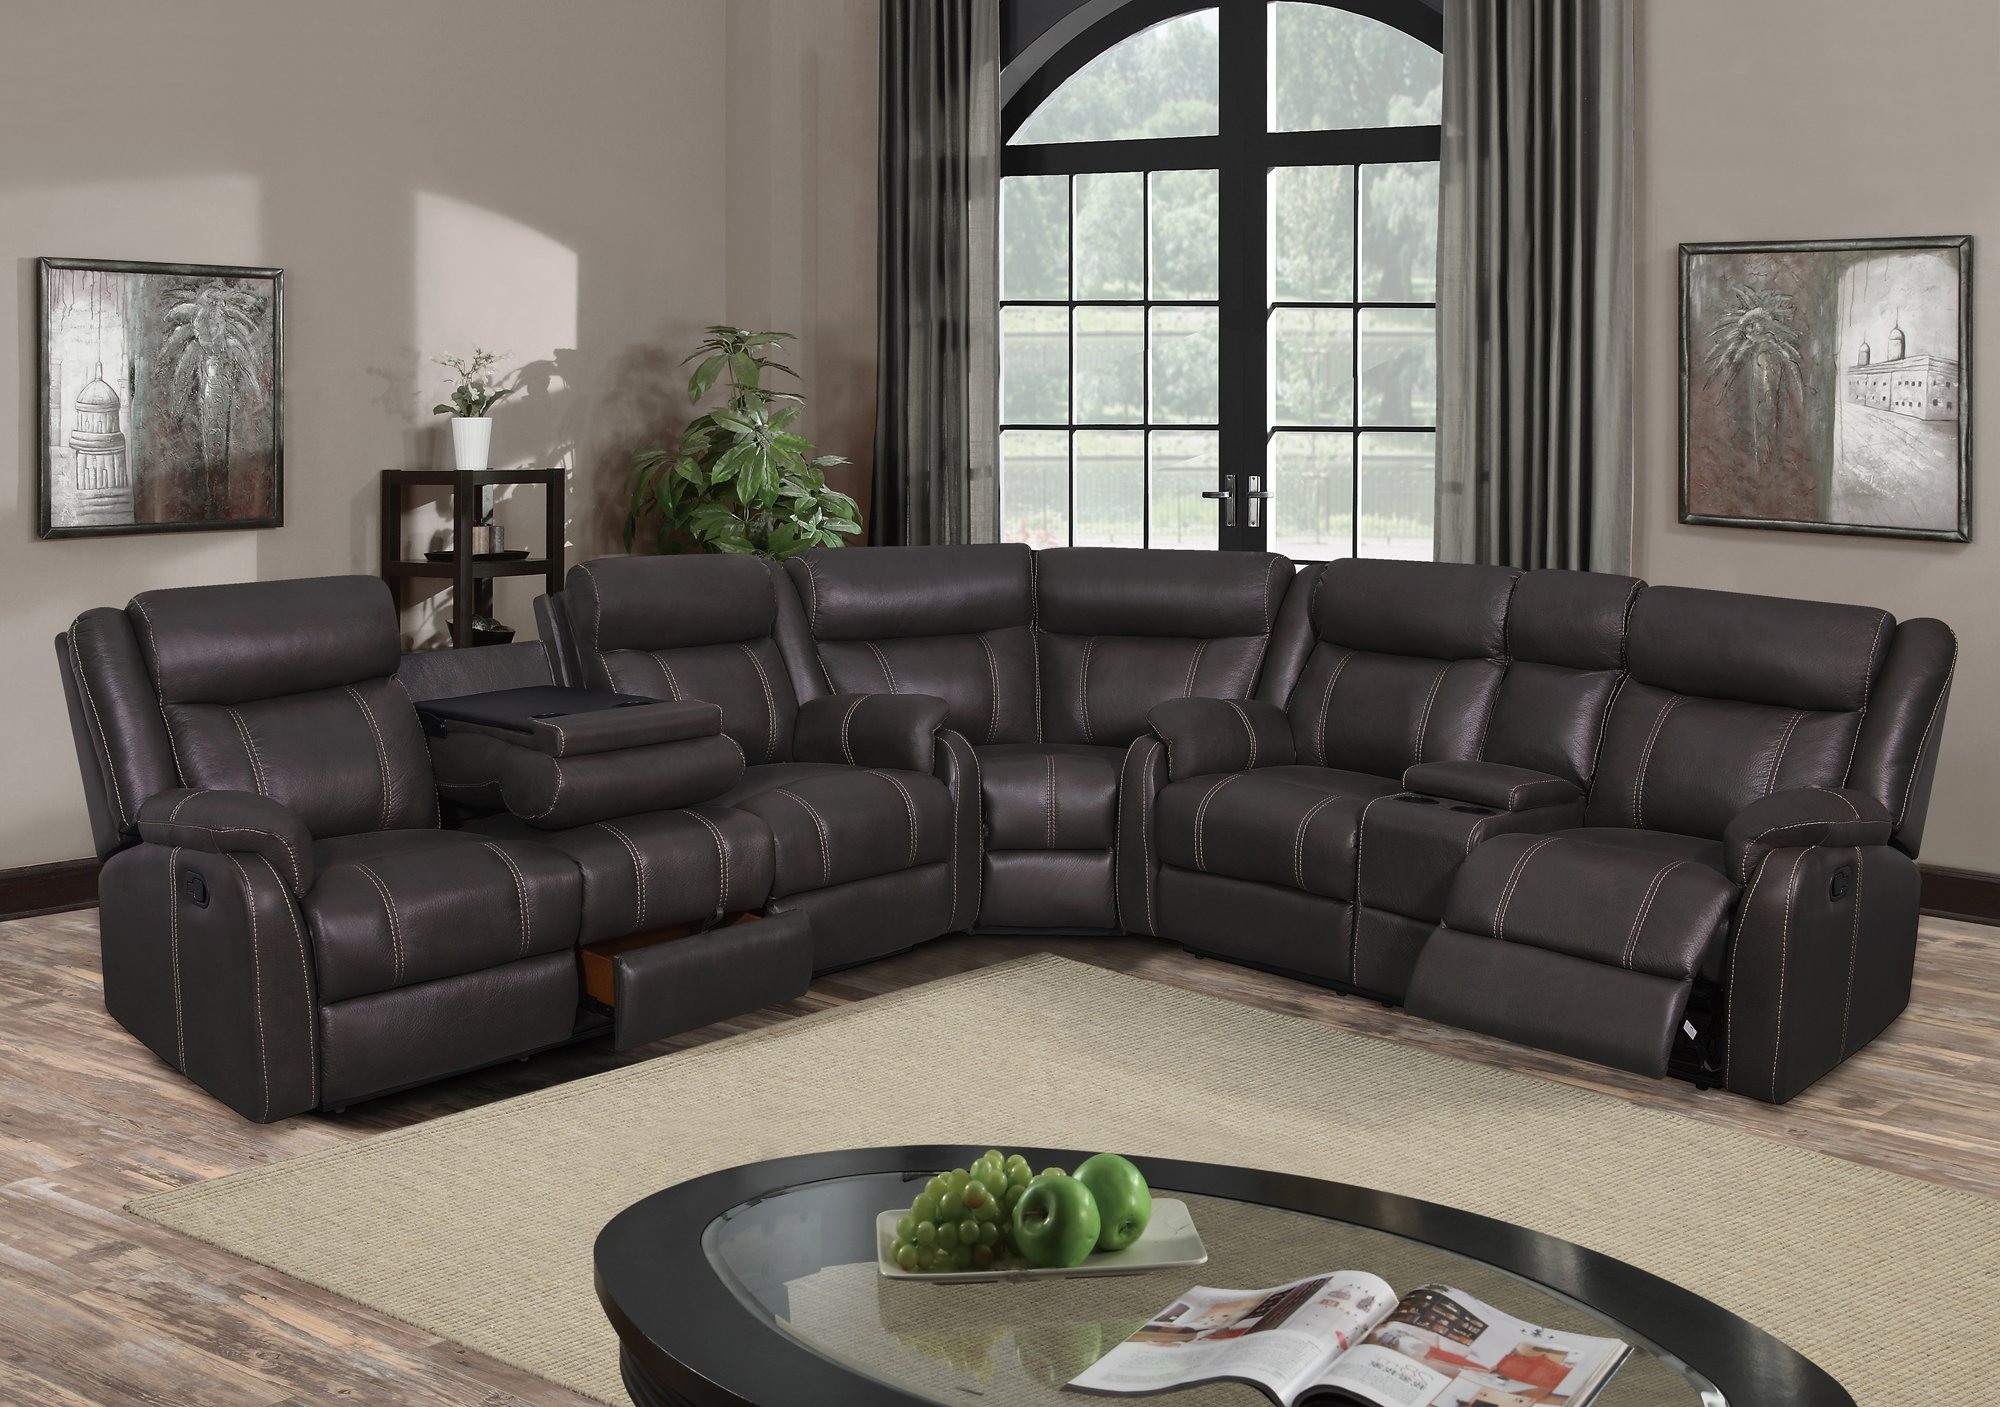 U7303C Charcoal Printed Fabric Sectional Sofa by Global Furniture